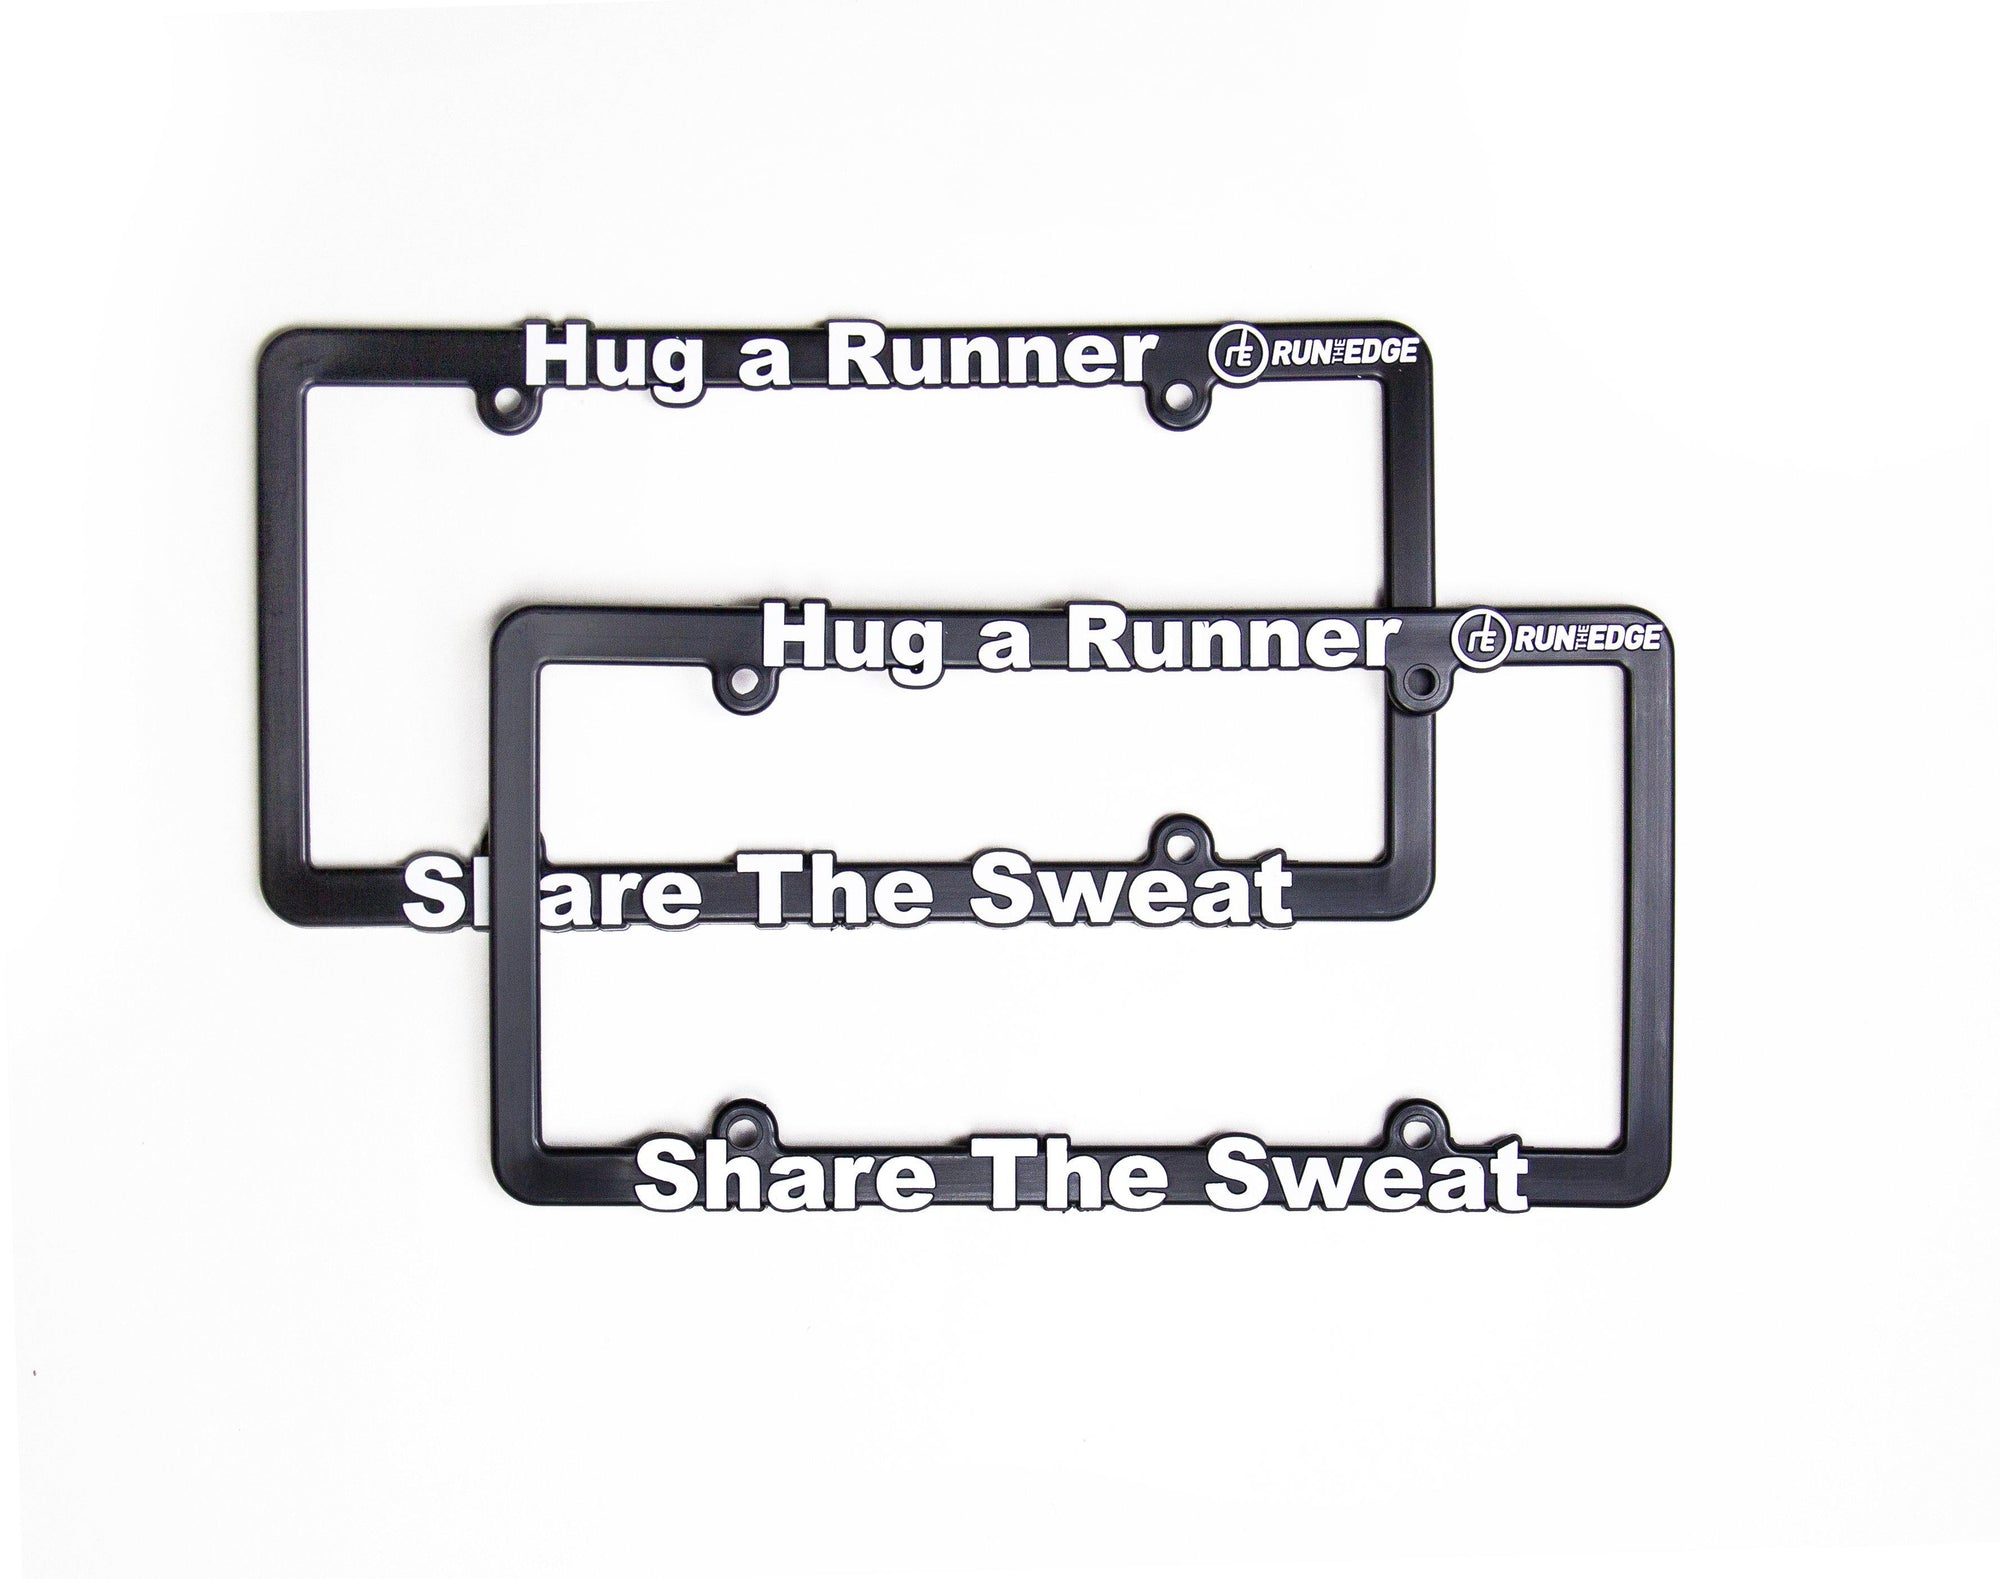 Hug a Runner License Plate Frame Accessories Run The Edge